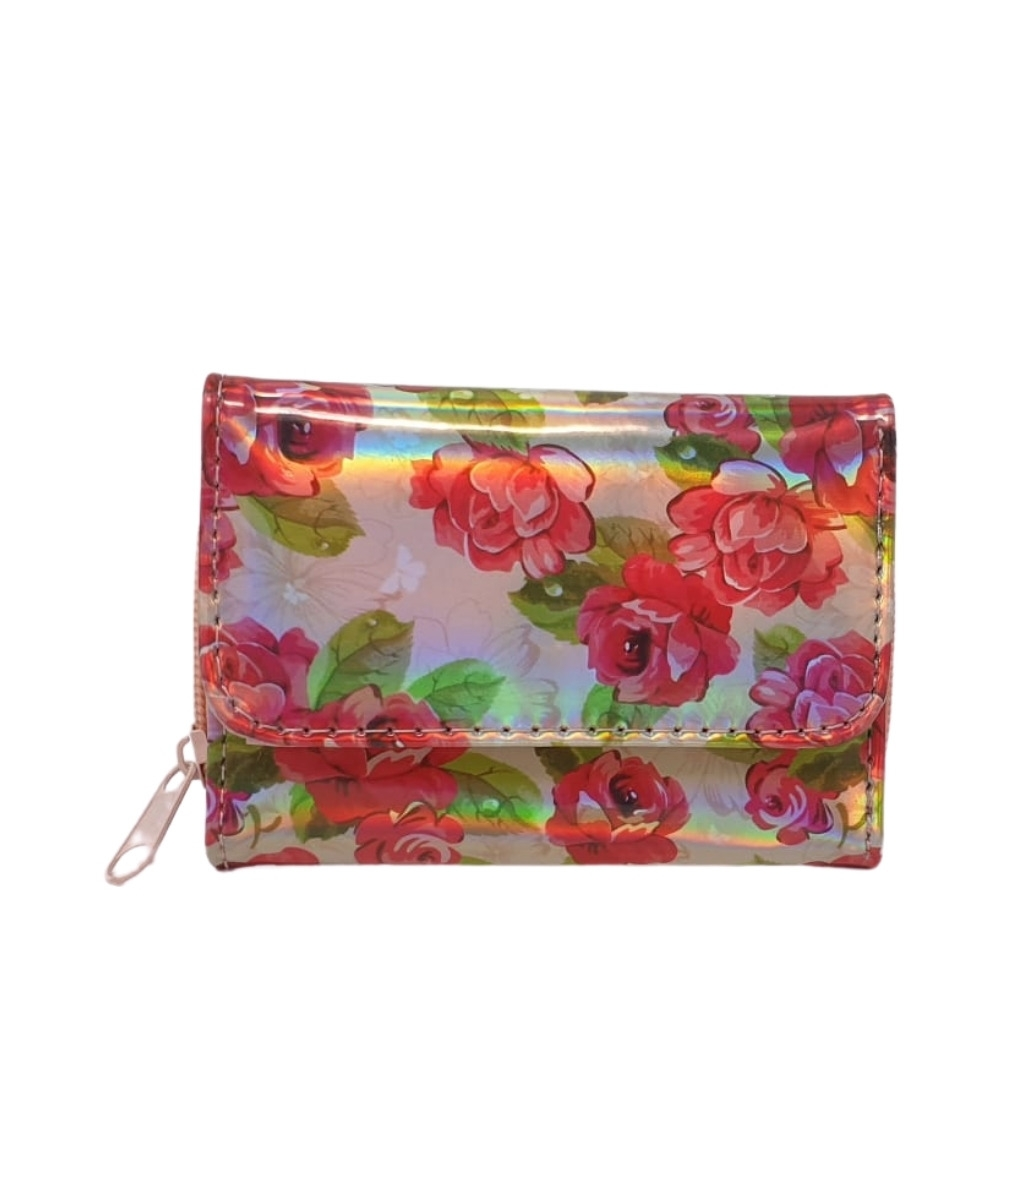 CIRCUS PURSE - RED FLOWERS